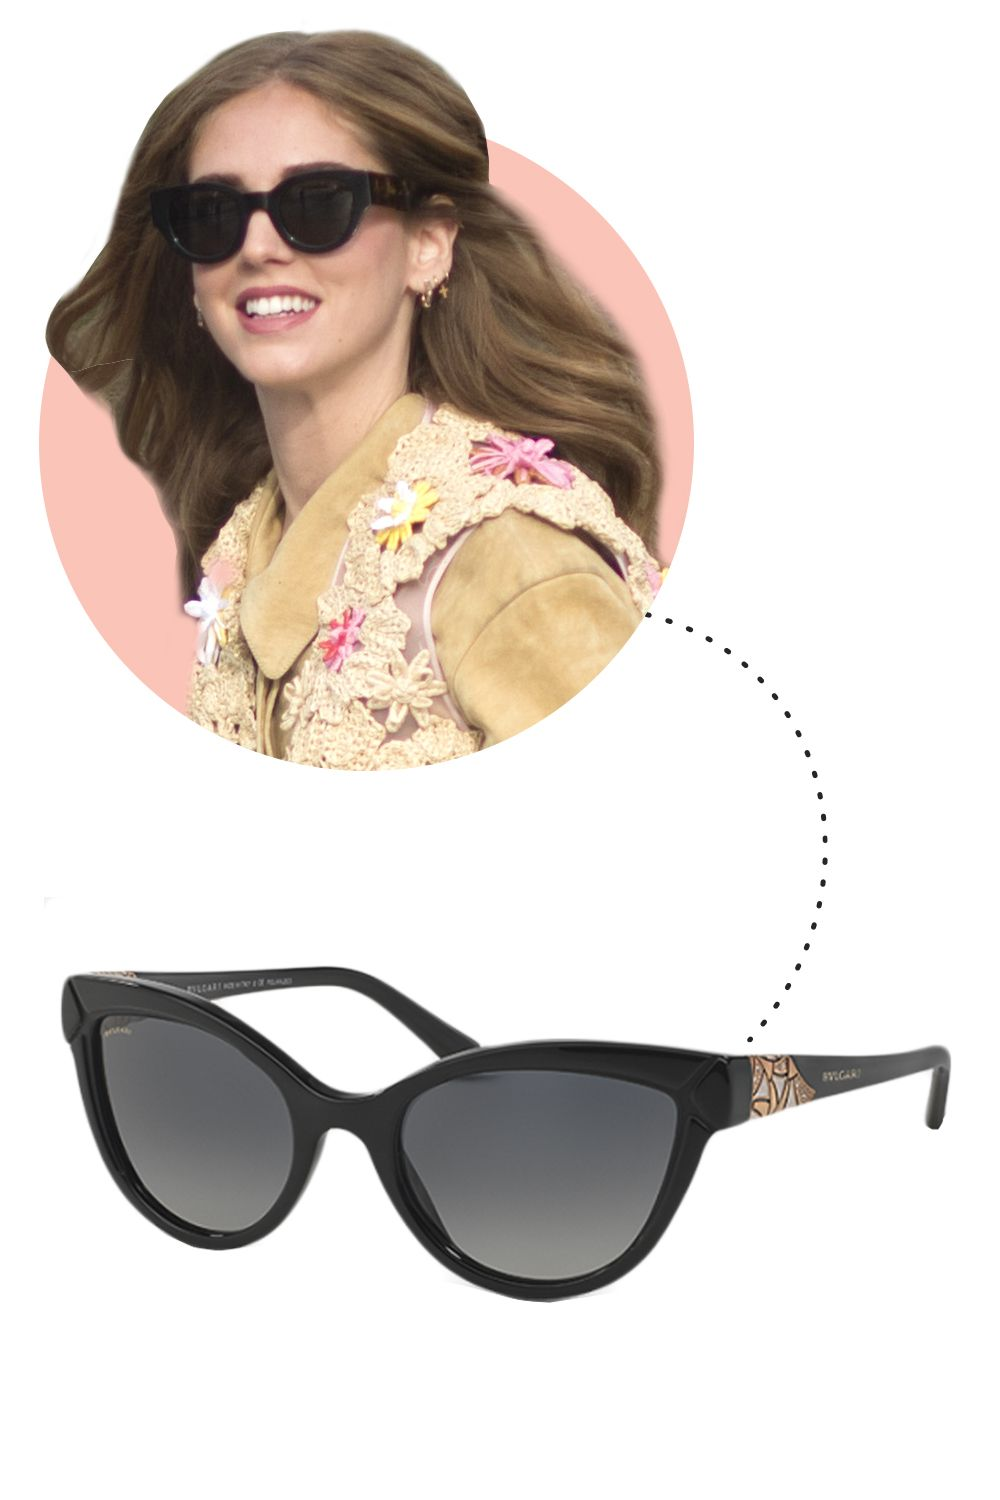 "<p>Italian street style stars are rarely seen without a massive pair of sunglasses, <em>alla moda</em>! </p><p>Bulgari Diva Sunglasses, $500; <a href=""http://www.bulgari.com/en-us/products/902787-e.html"">bulgari.com</a></p>"